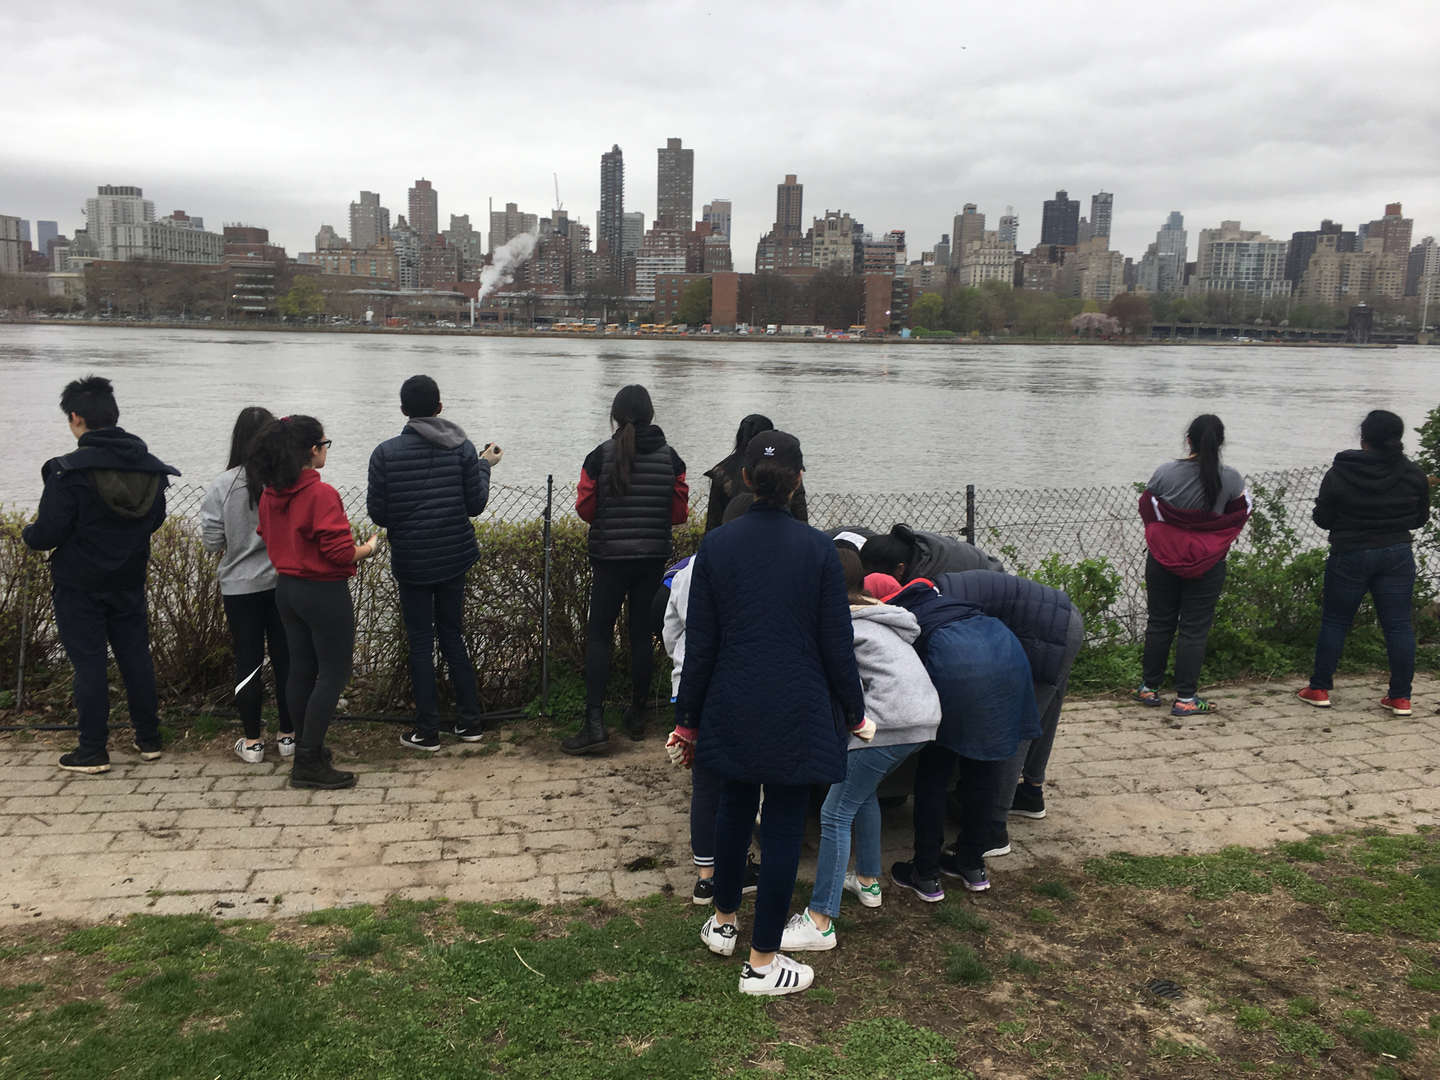 Students look out onto a body of water